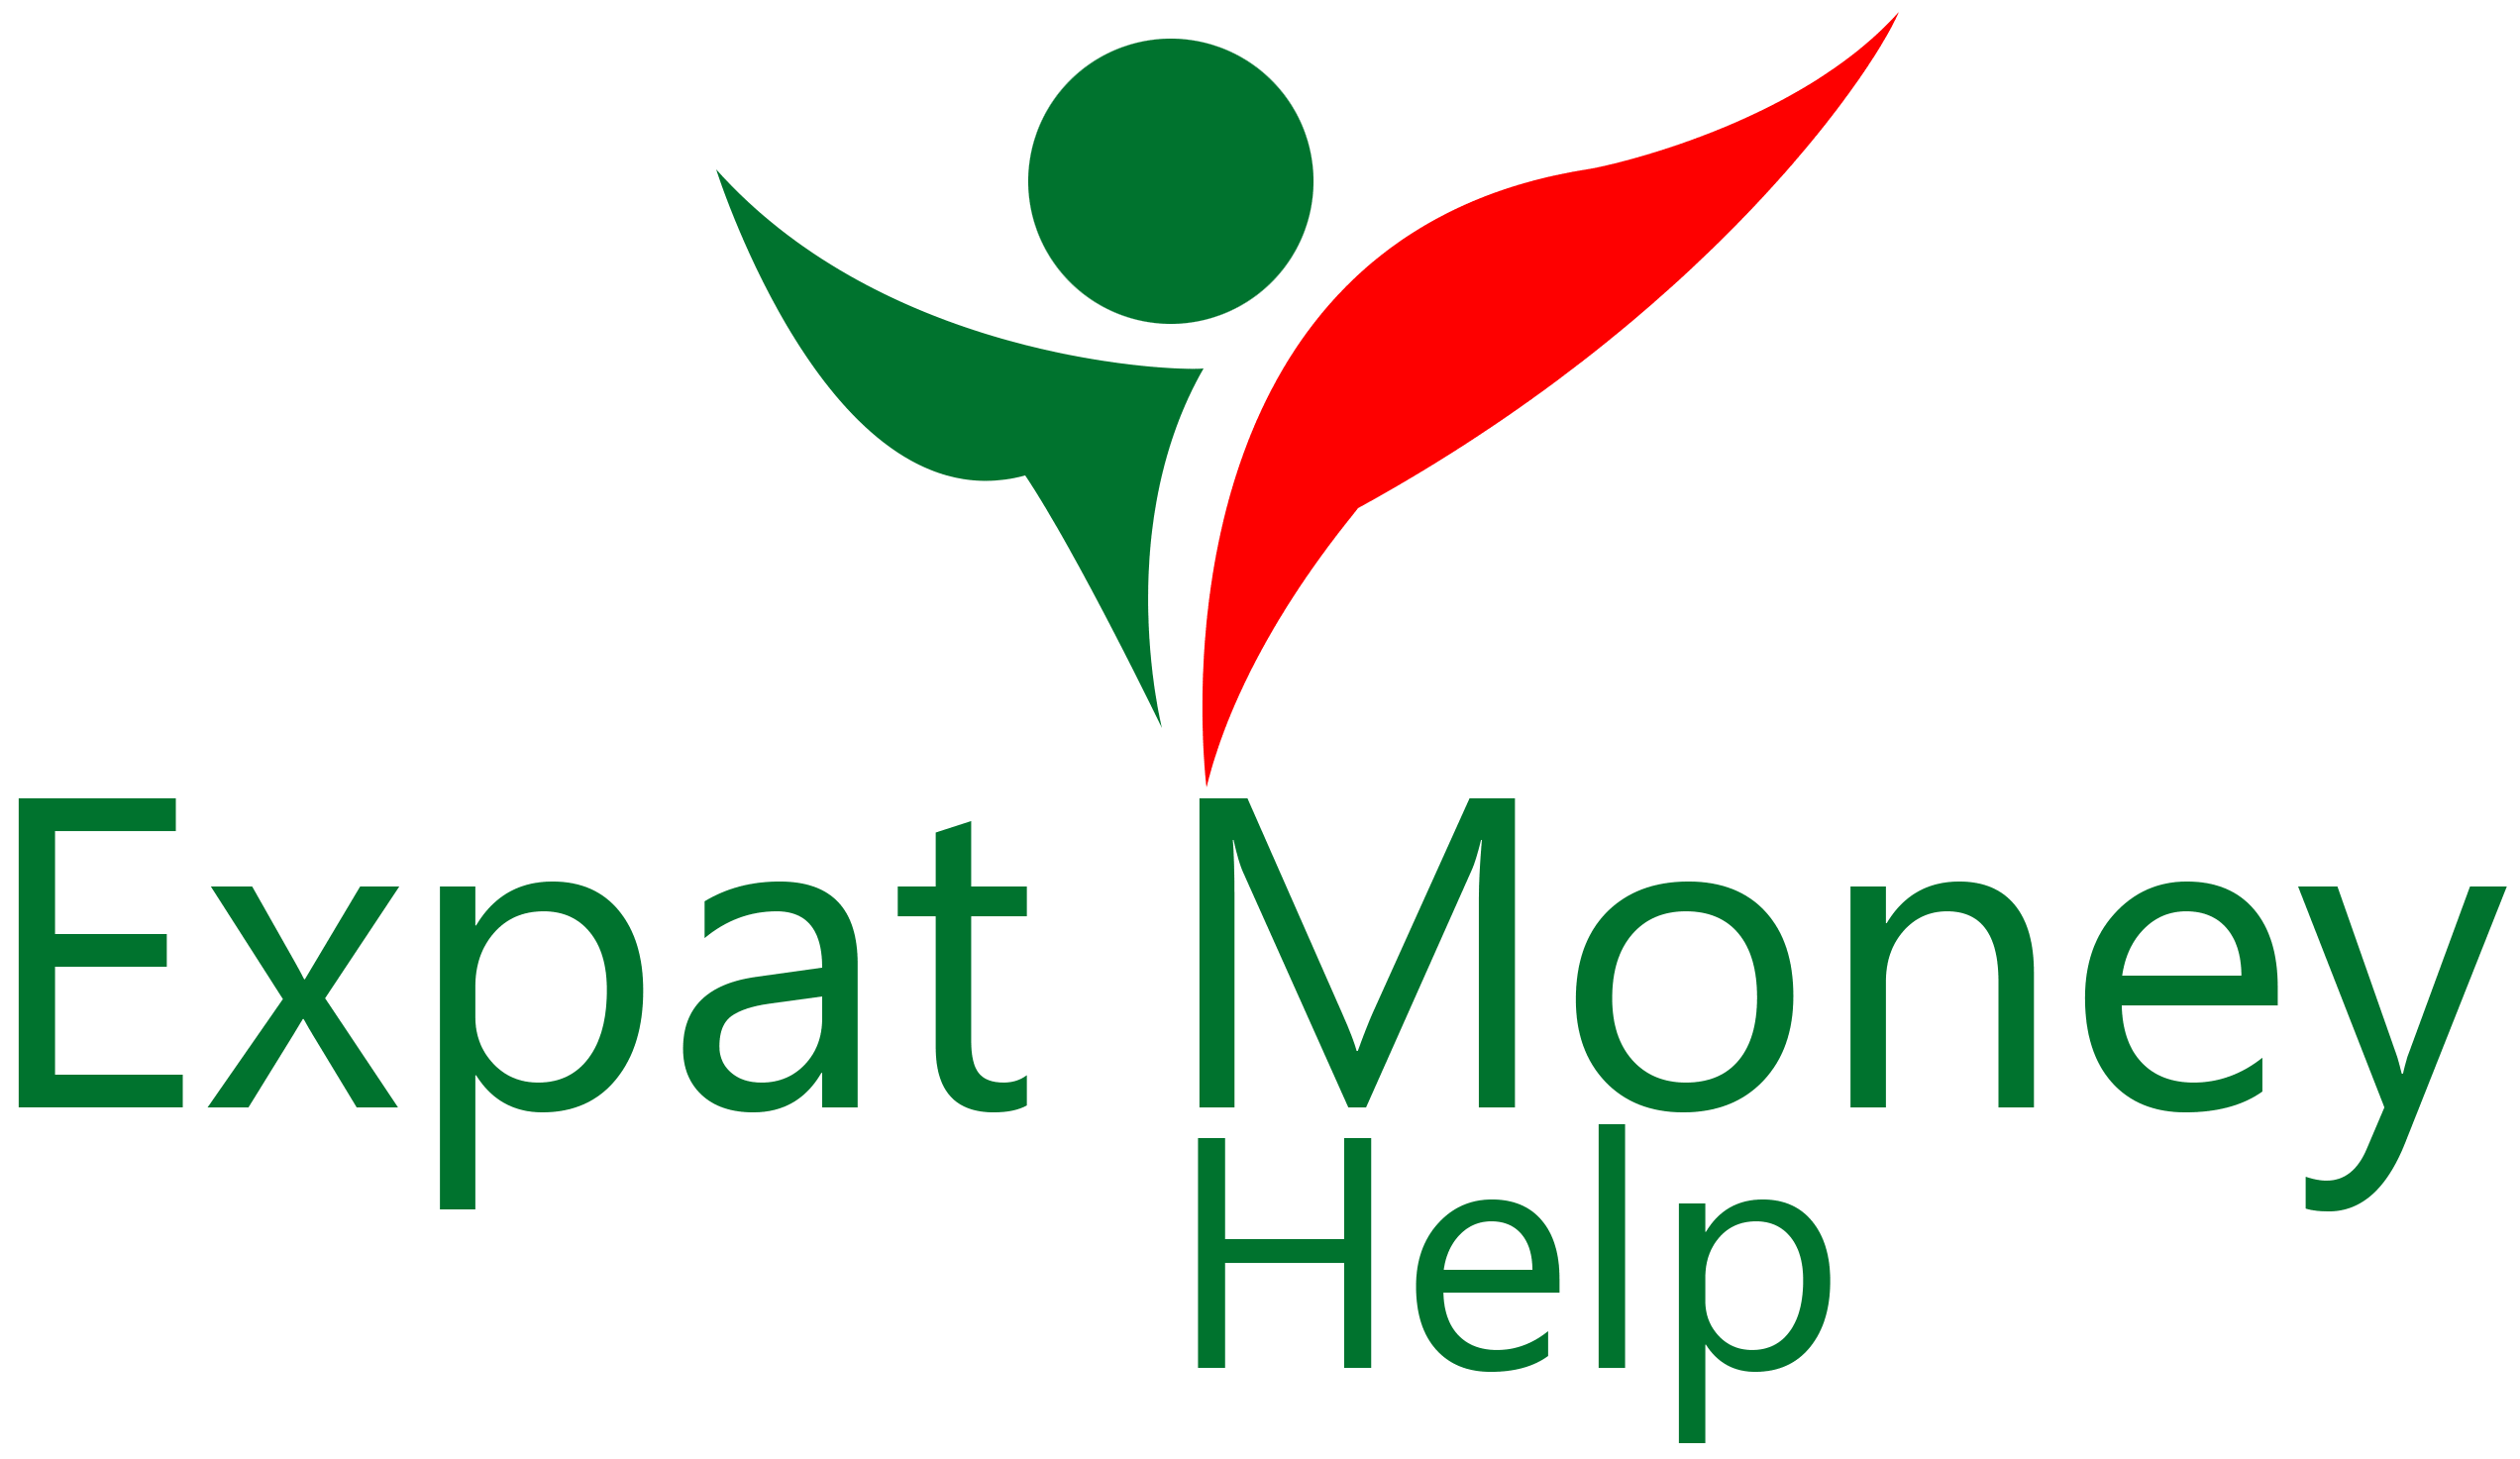 Expat Money Help